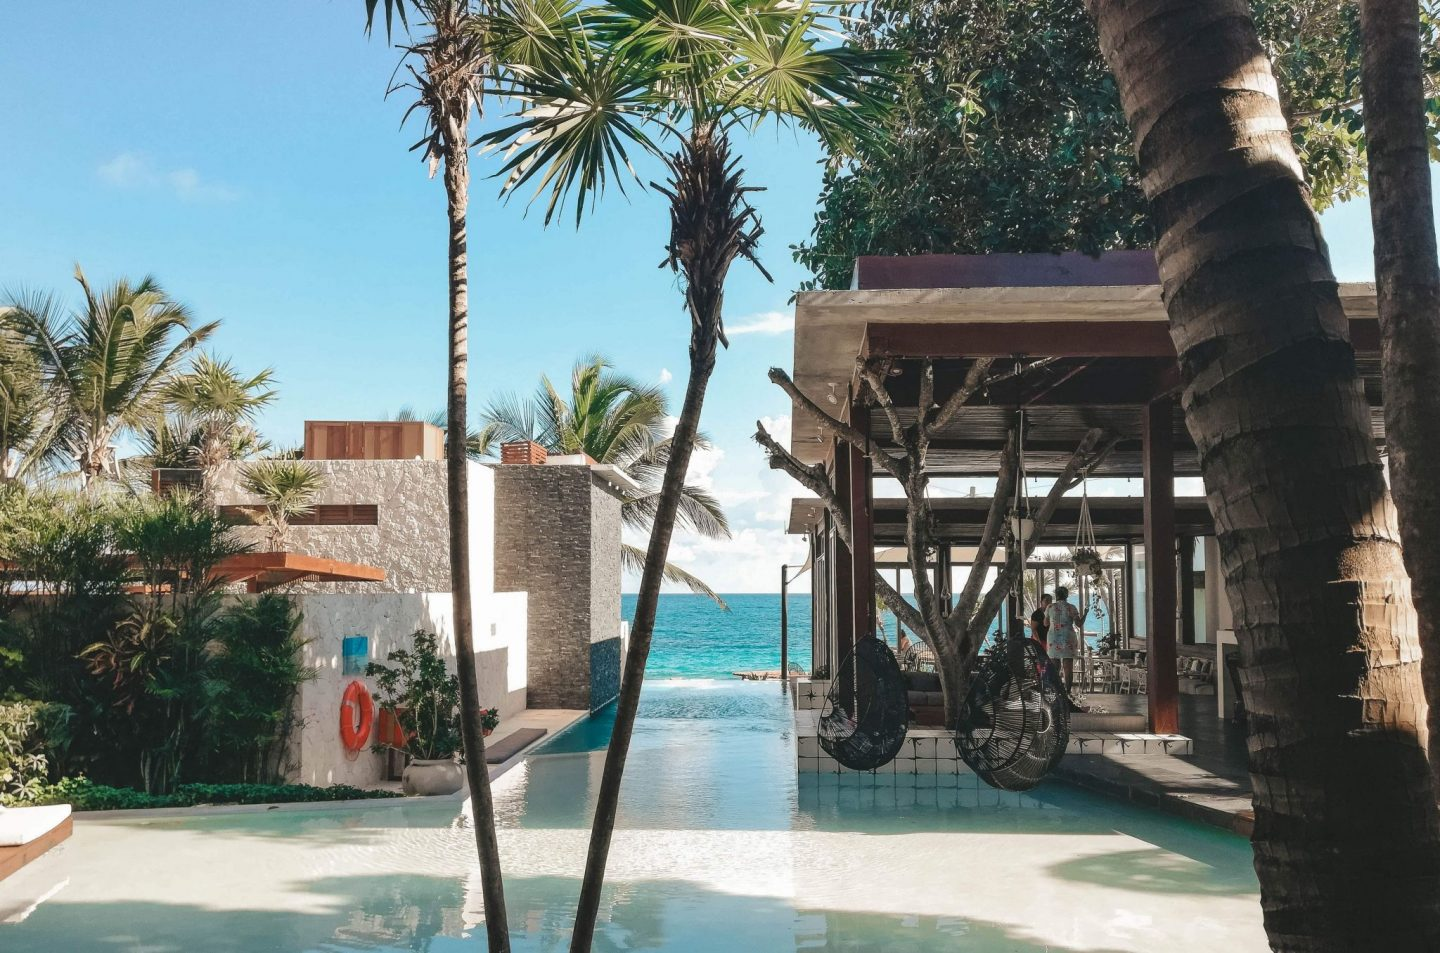 Where to stay in Tulum | How to choose the best accommodation for your trip